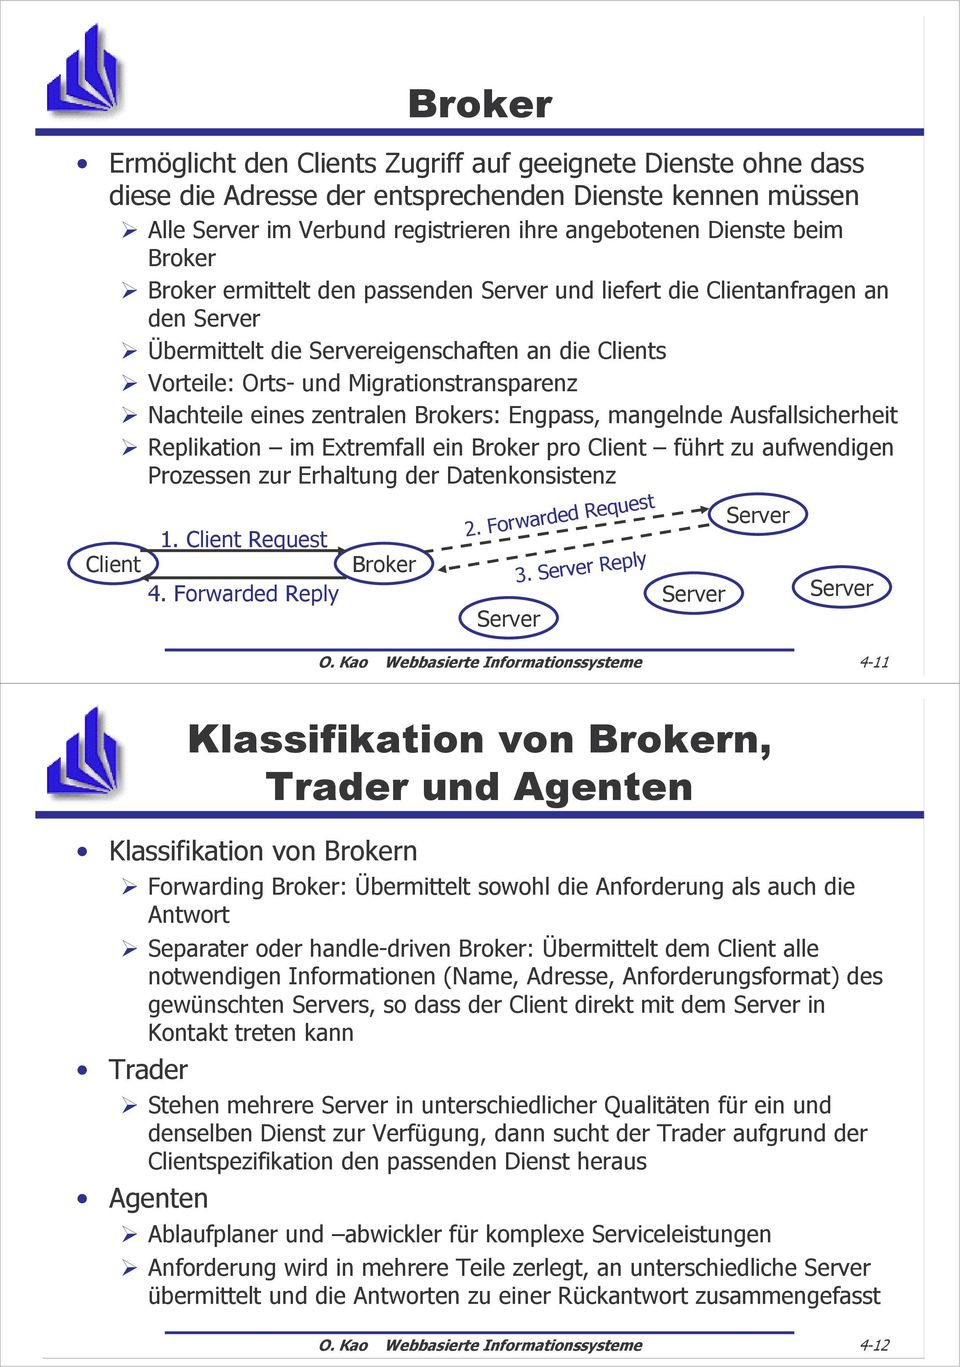 Ausfallsicherheit Replikation im Extremfall ein Broker pro führt zu aufwendigen Prozessen zur Erhaltung der Datenkonsistenz 1. Request 4. Forwarded Reply Broker 2. Forwarded Request 3. Reply O.